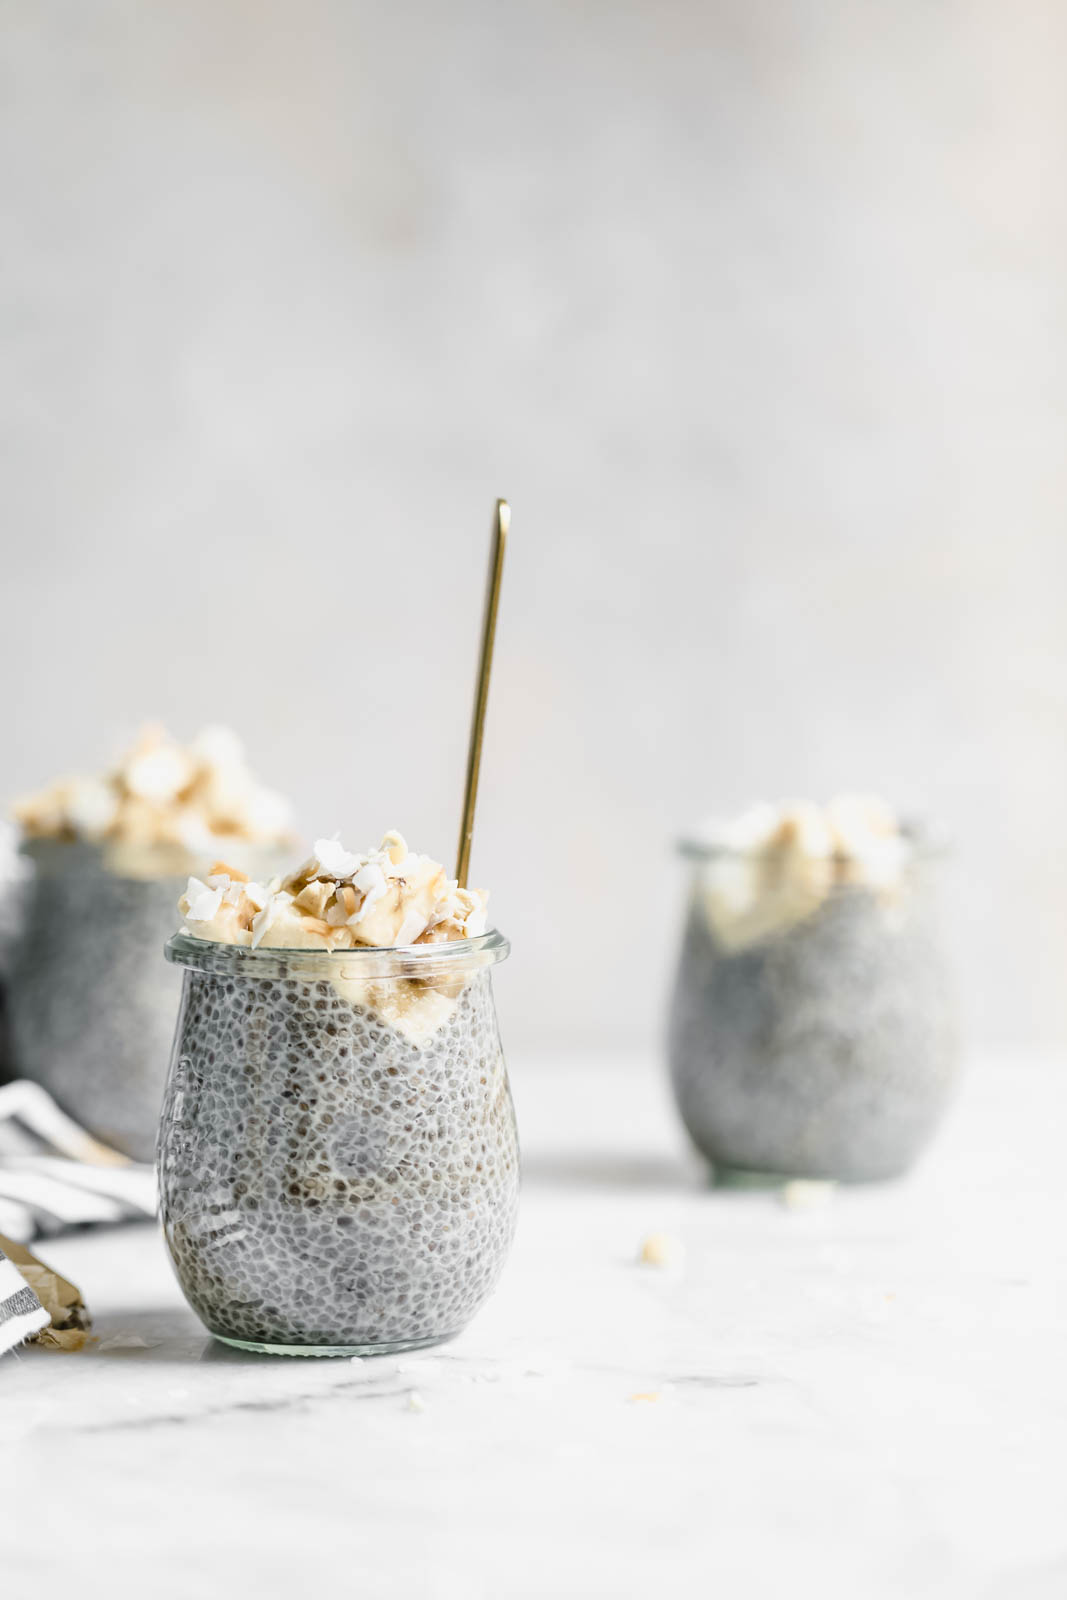 Creamy coconut chia pudding on counter